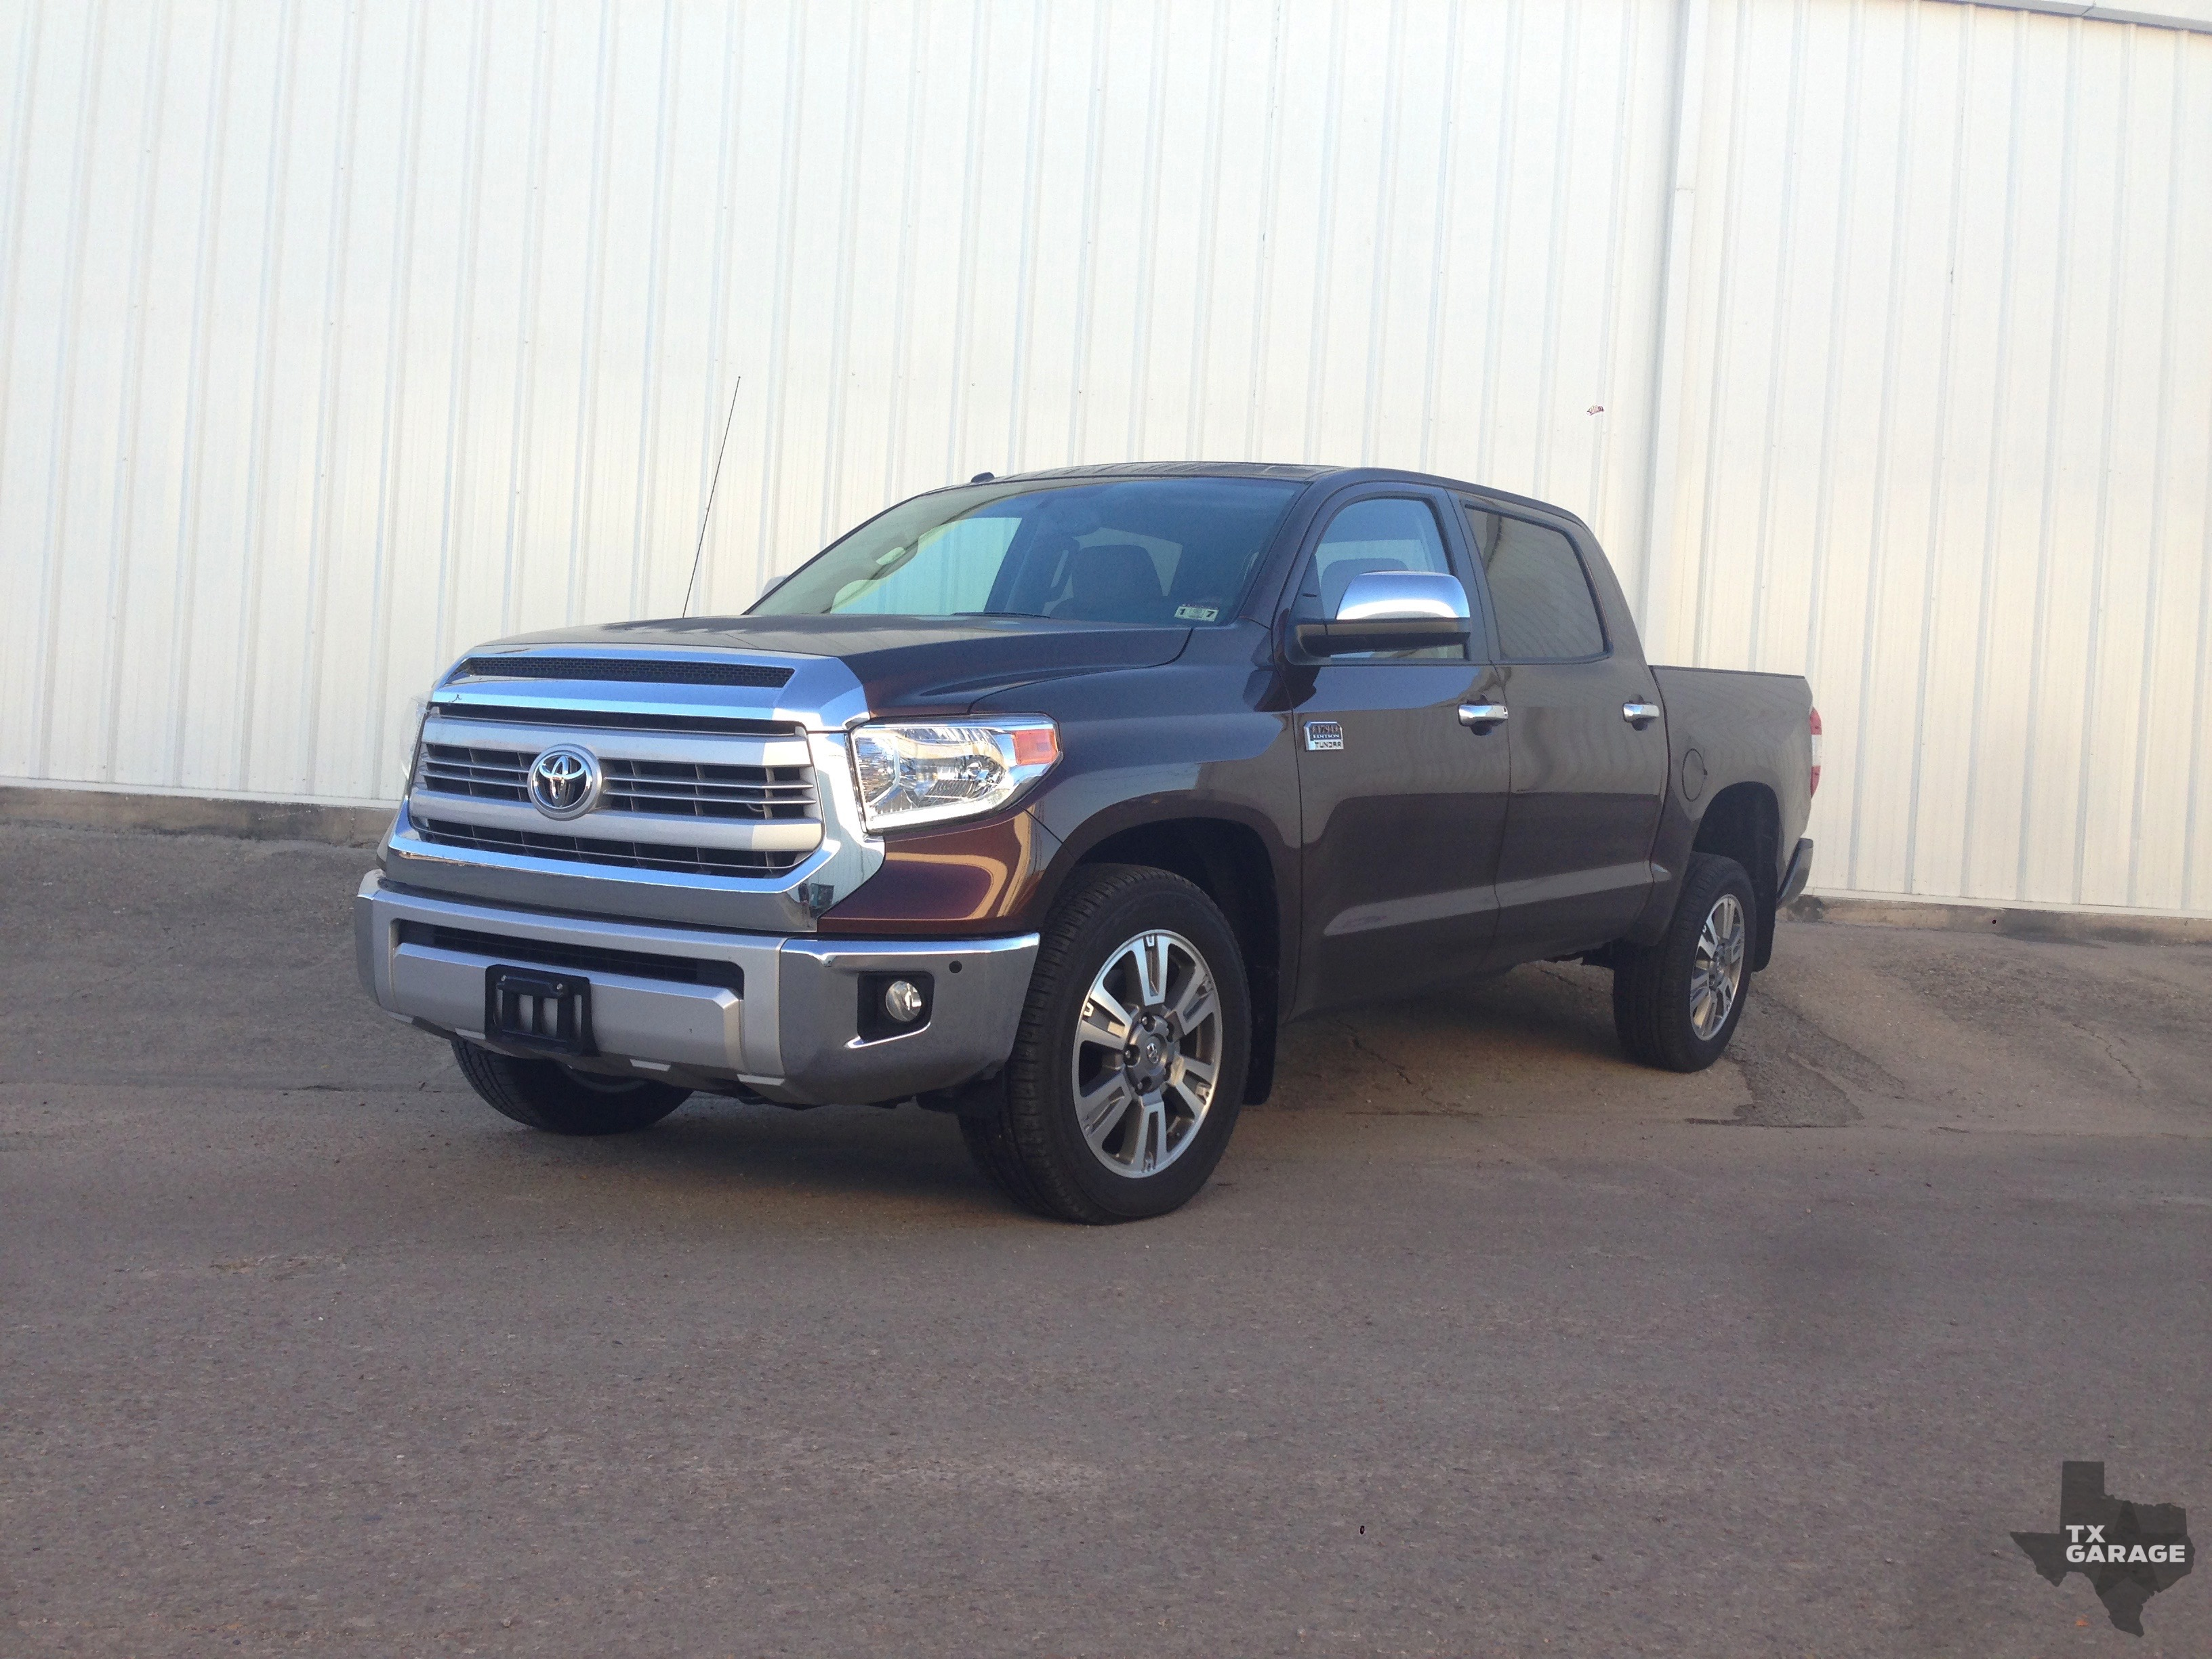 The 2015 Toyota Tundra 1794